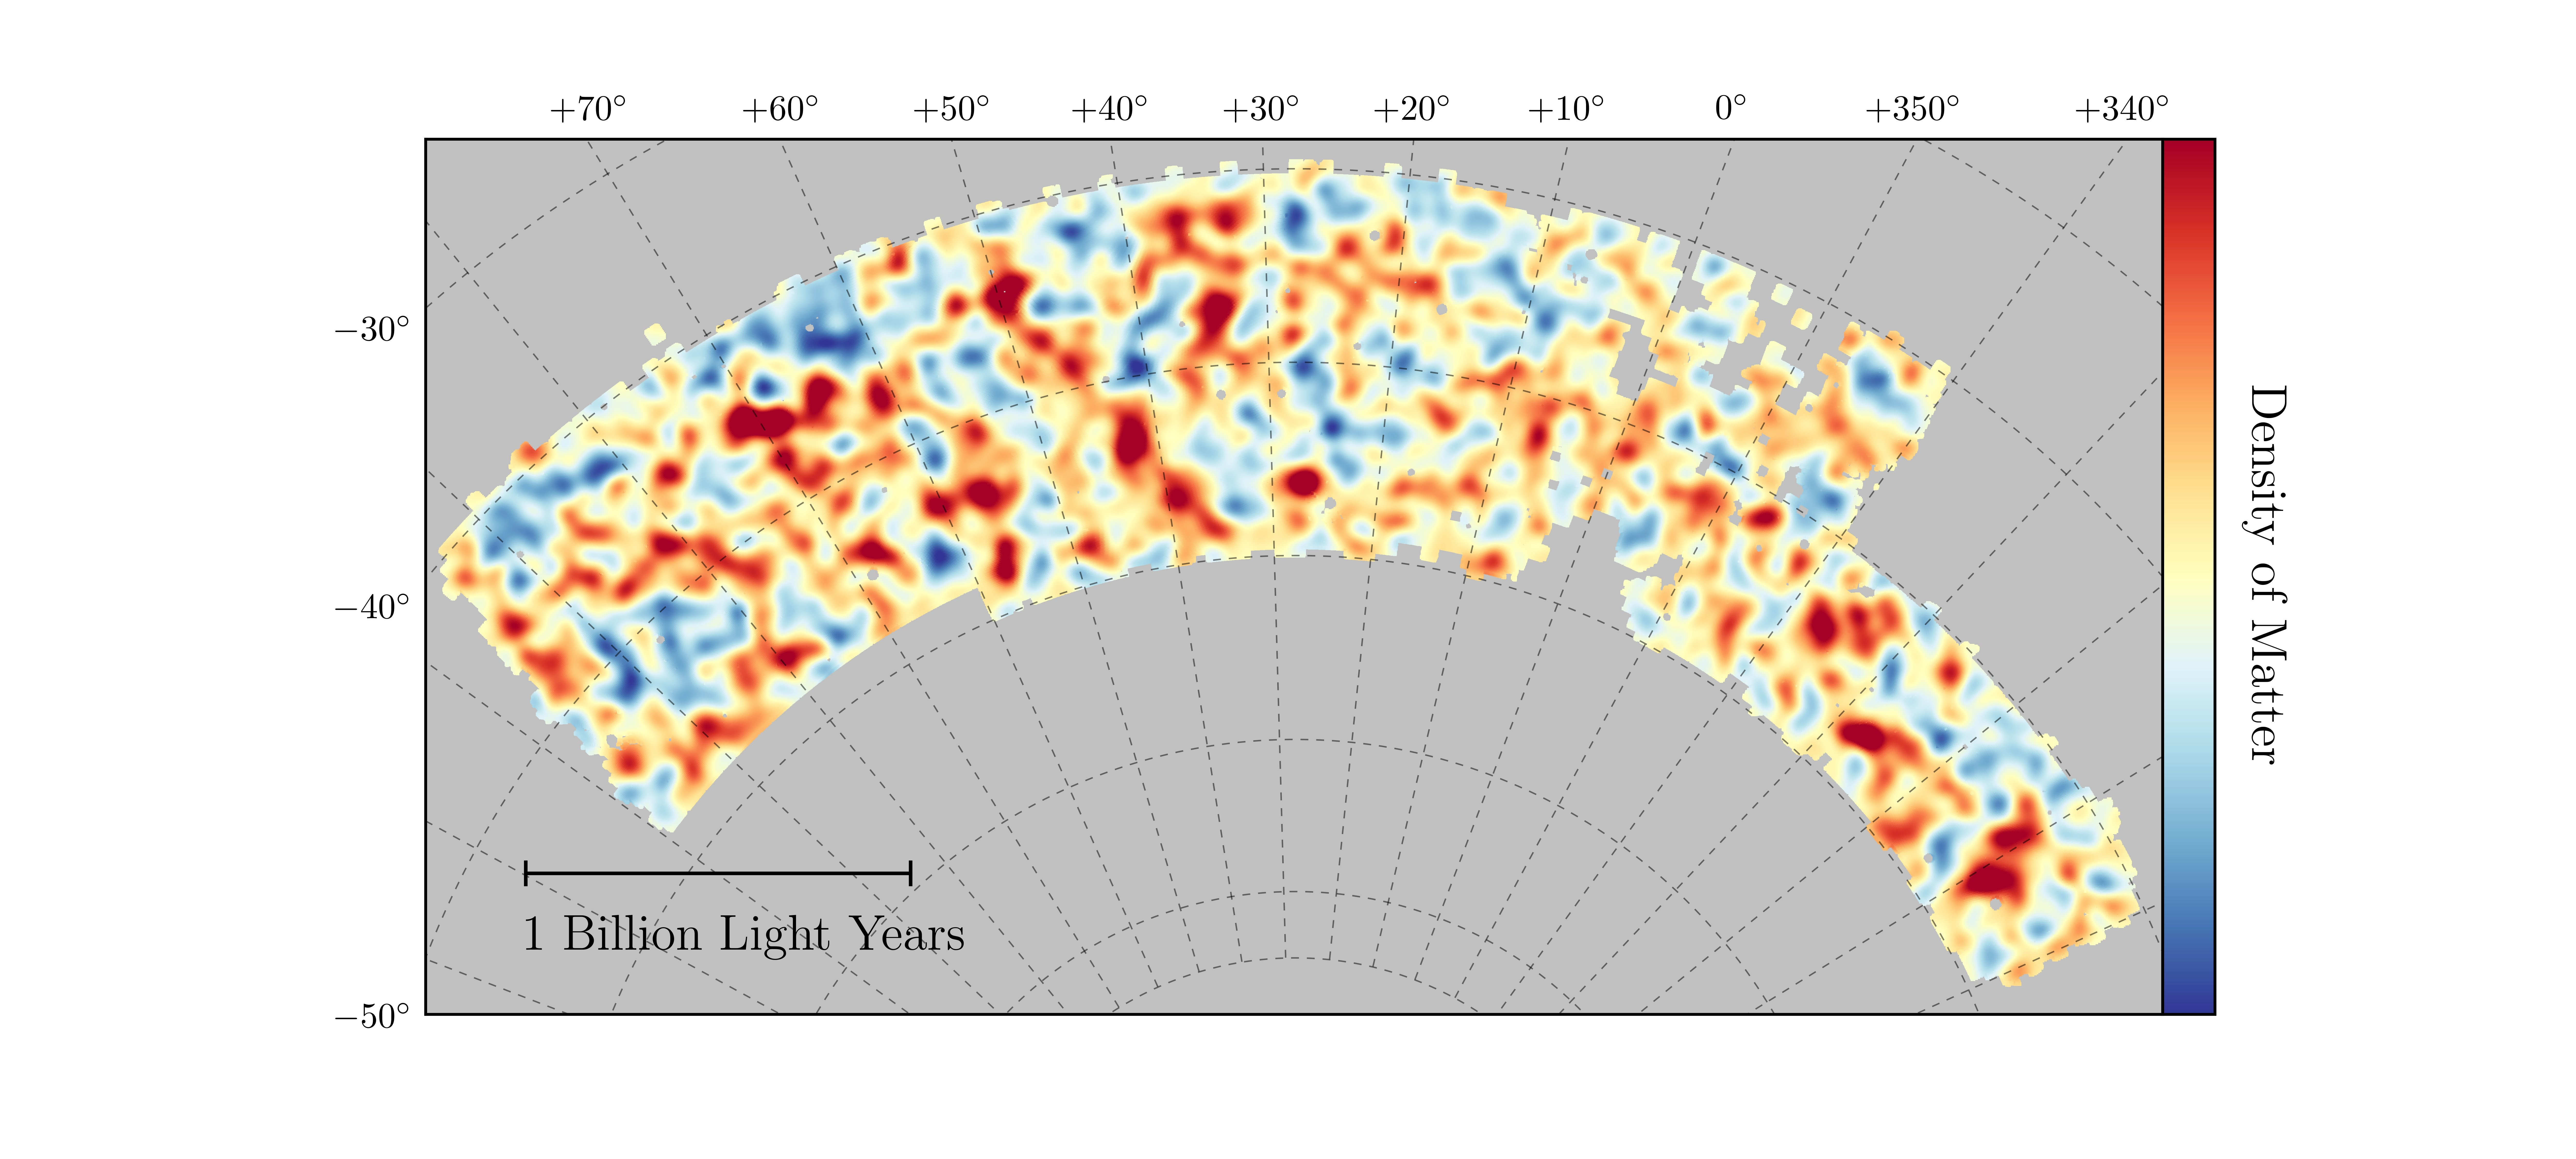 Map of dark matter made from gravitational lensing measurements of 26 million galaxies in the Dark Energy Survey. The map covers about 1/30th of the entire sky and spans several billion light years in extent. Red regions have more dark matter than average, blue regions less dark matter. Image credit: Chihway Chang of the Kavli Institute for Cosmological Physics at the University of Chicago, and the DES collaboration. (OSC)